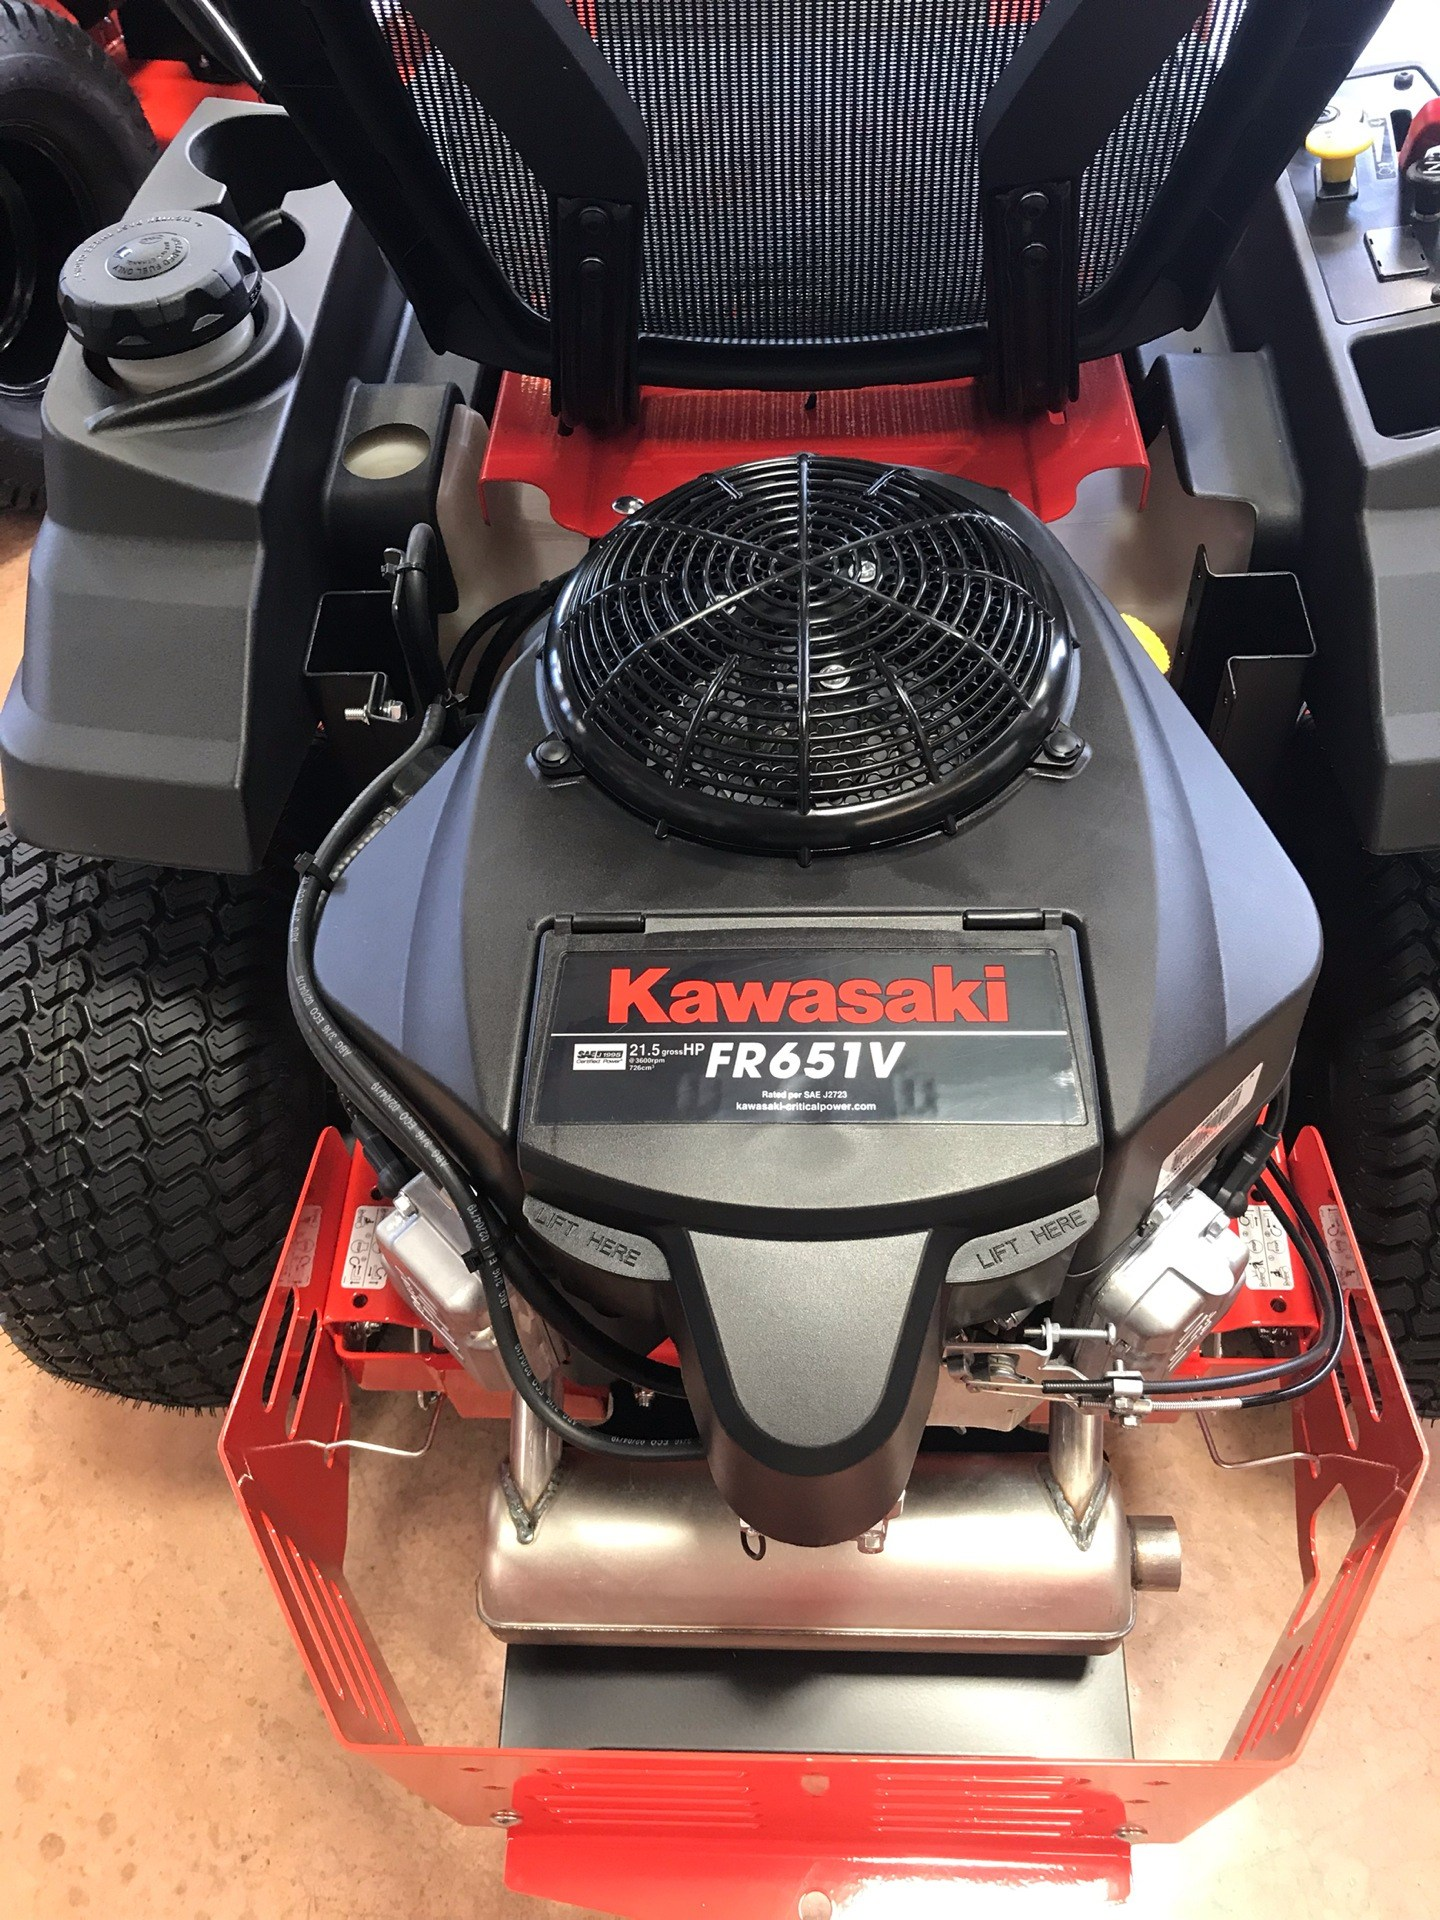 2019 Simplicity Courier 42 in. Kawasaki 21.5 hp in Evansville, Indiana - Photo 5